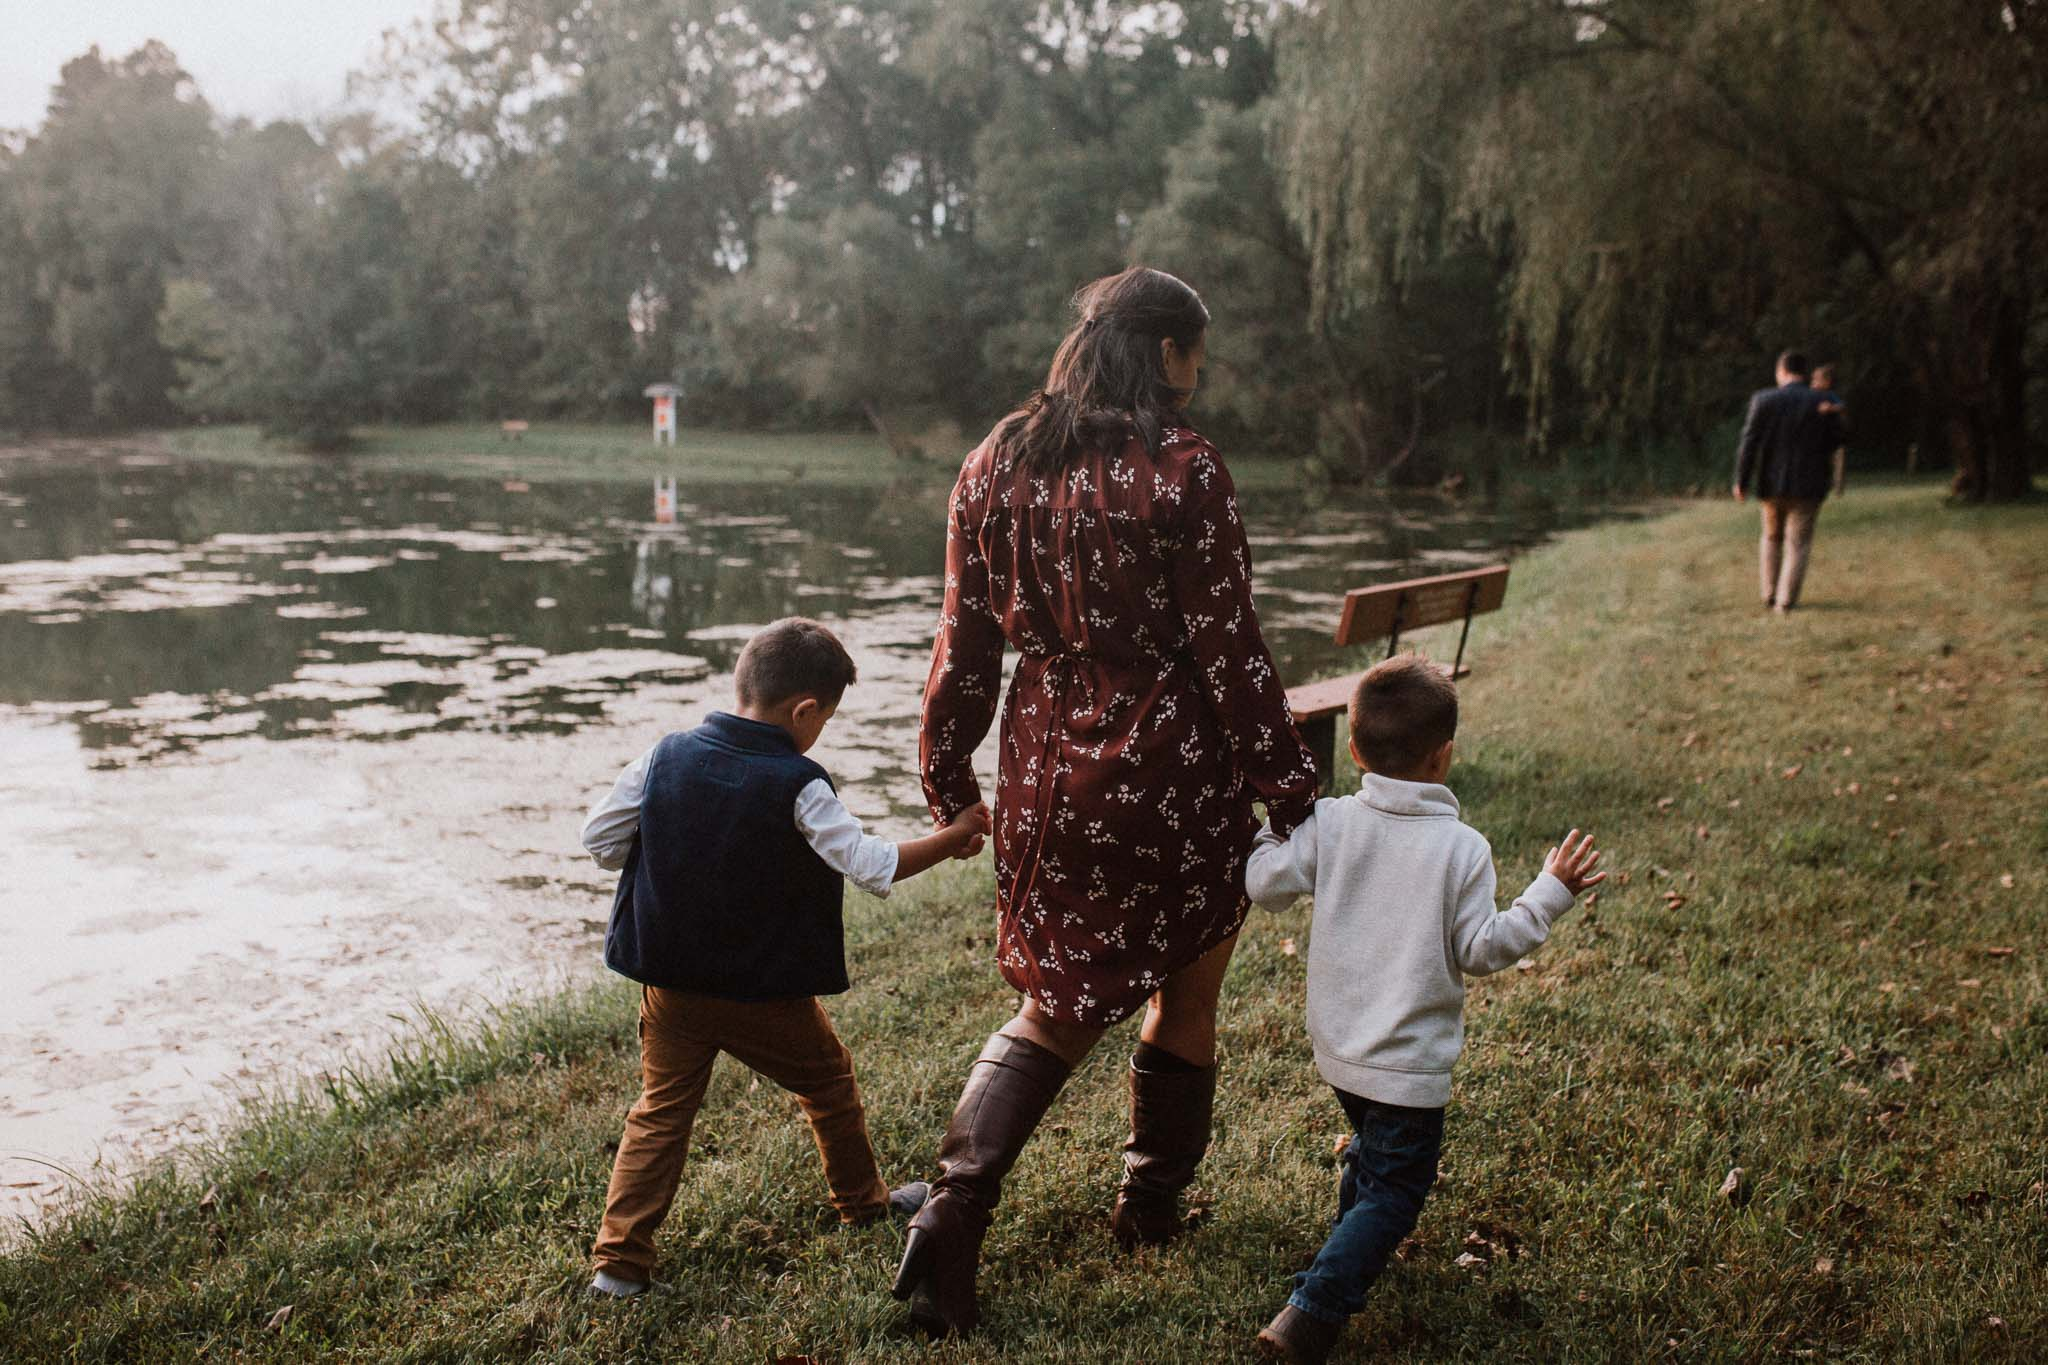 mother sons Family Lifestyle Documentary Sunset Golden Hour Izaak Walton League Leesburg Loudoun Virginia Marti Austin Photography